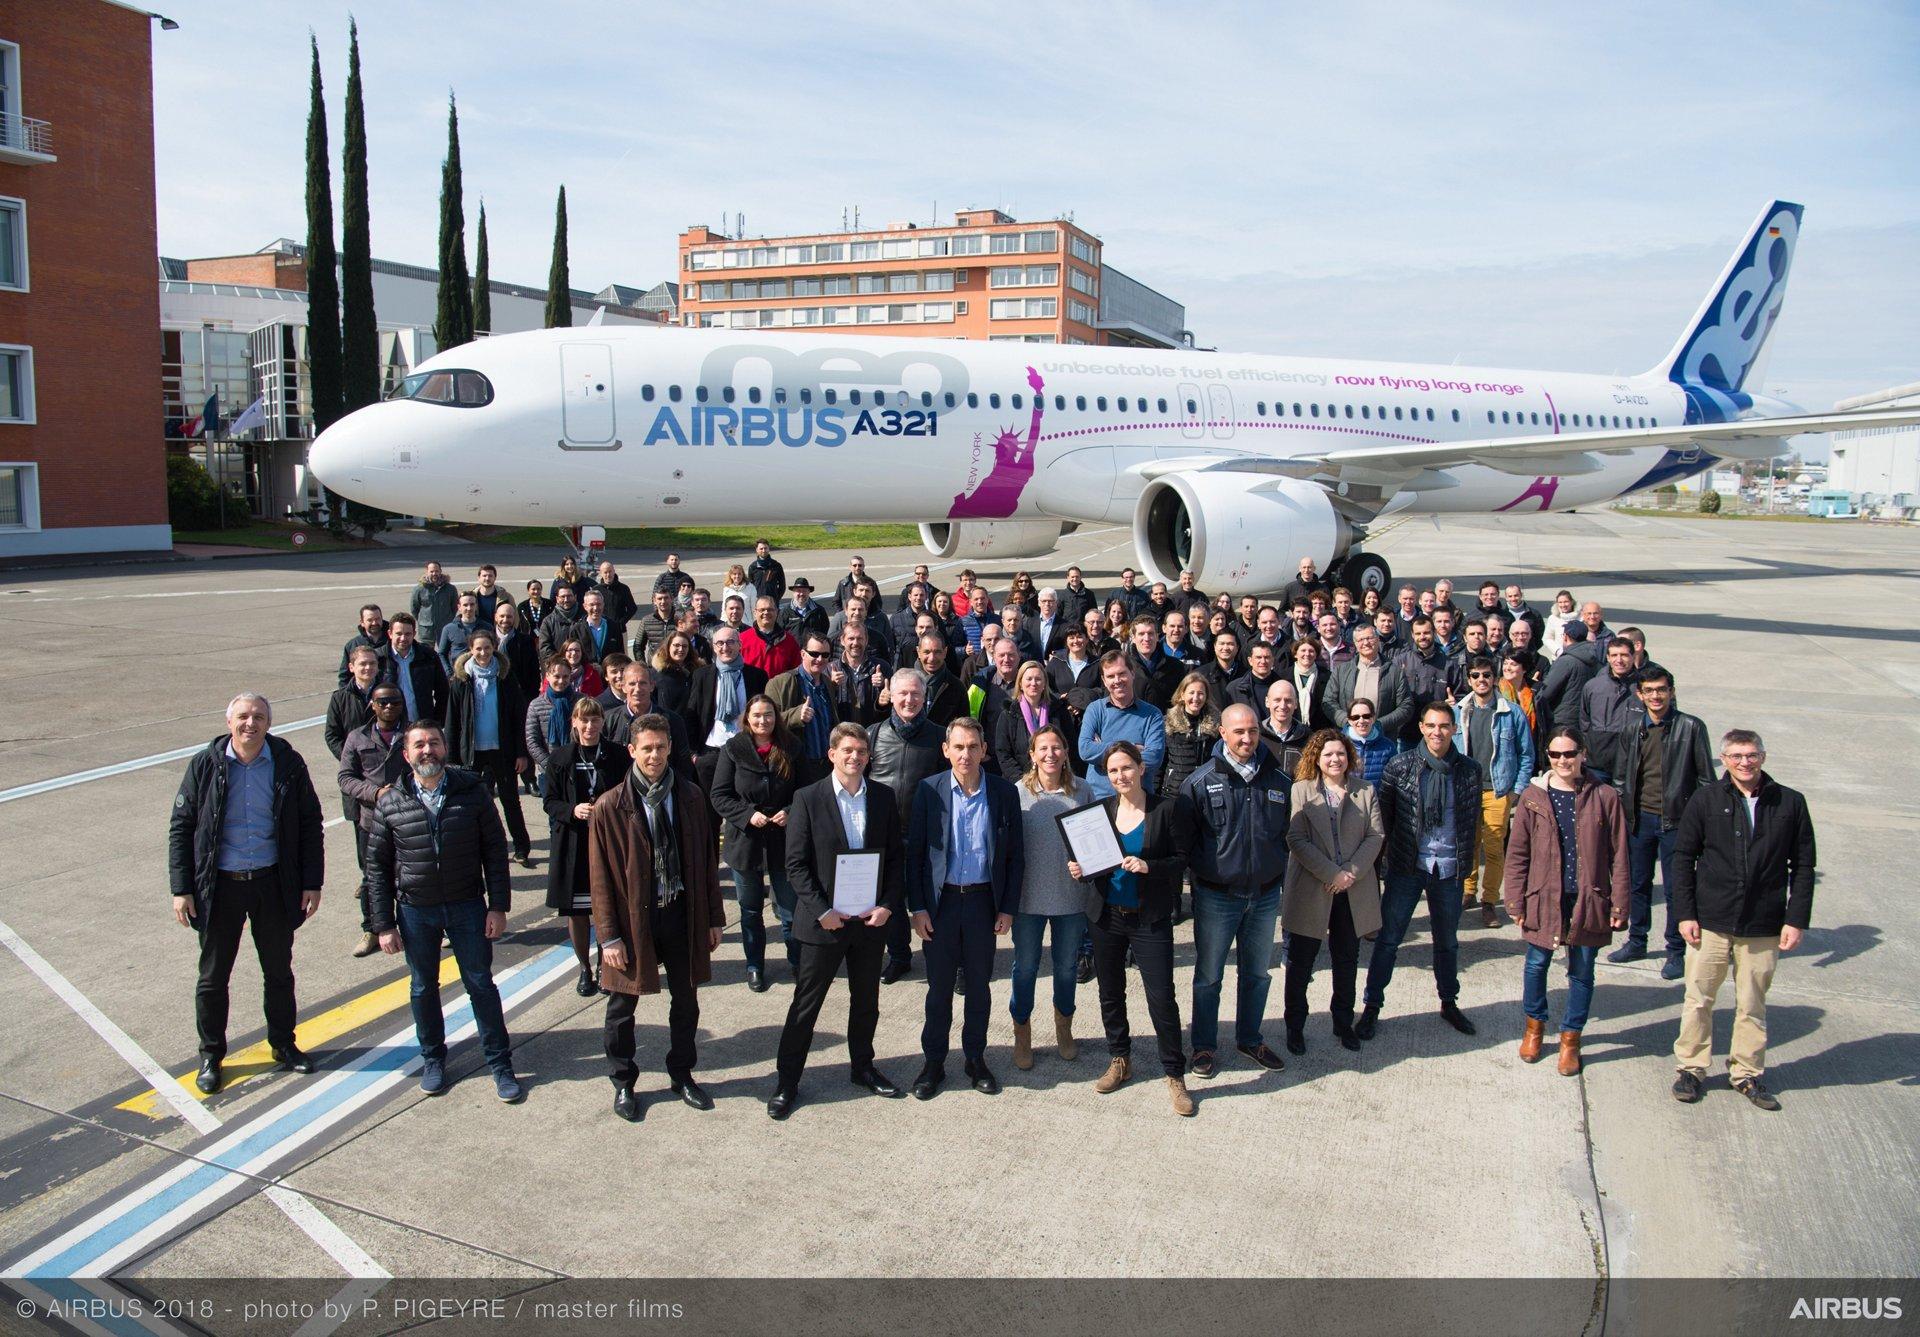 The A321LR – which received its type certification in 2018 – is the next evolutionary step of Airbus' twin-engine A321neo, which has captured more than an 80% share in its middle-of-the-market category